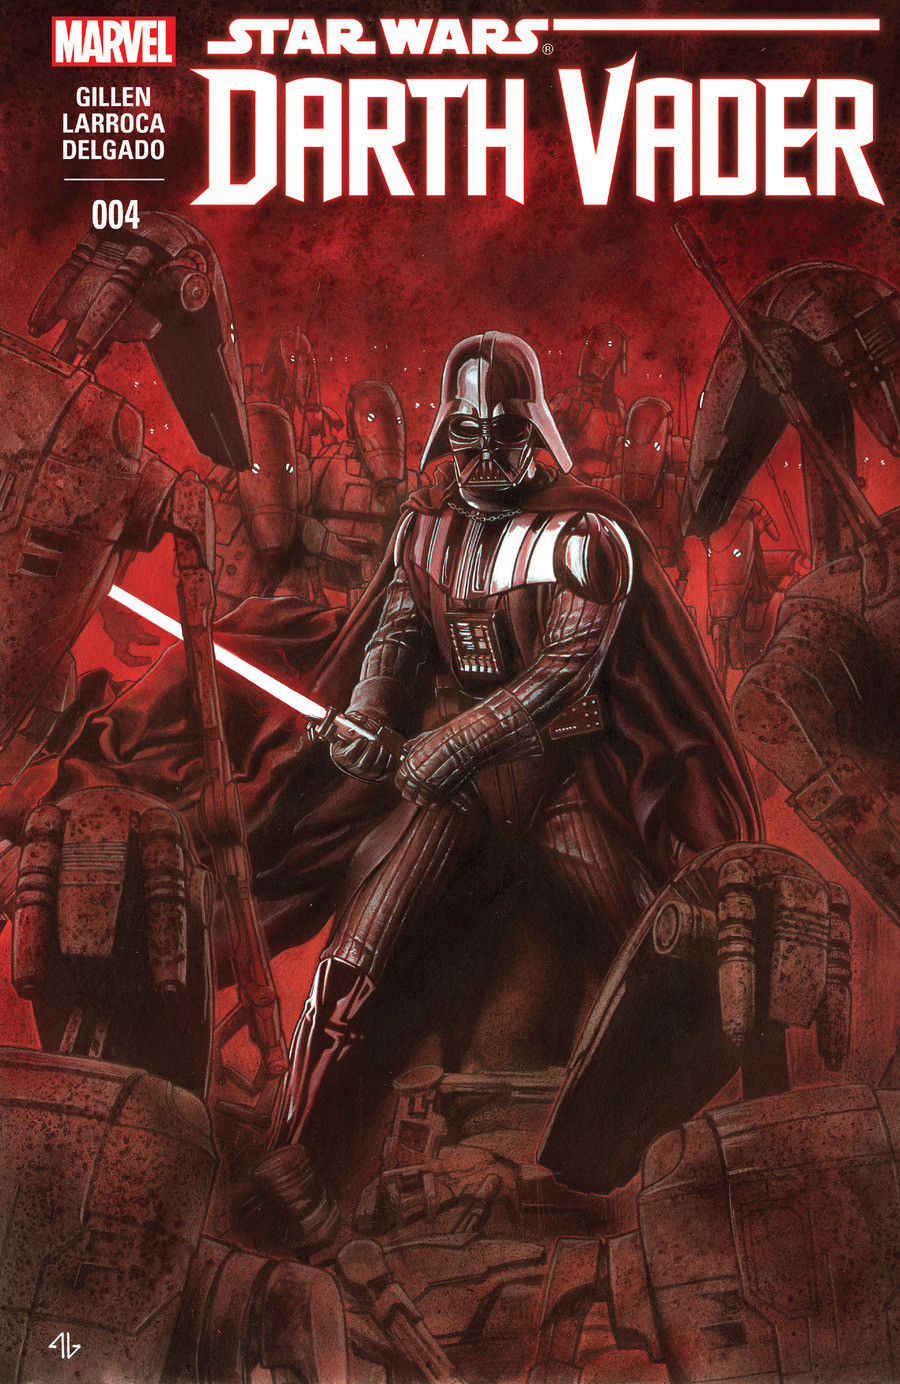 Star Wars Darth Vader issue 4. join list: StarWarsDarthVader (284 subs)Mention History This is the fourth issue of the canon darth vader comic series. Like the